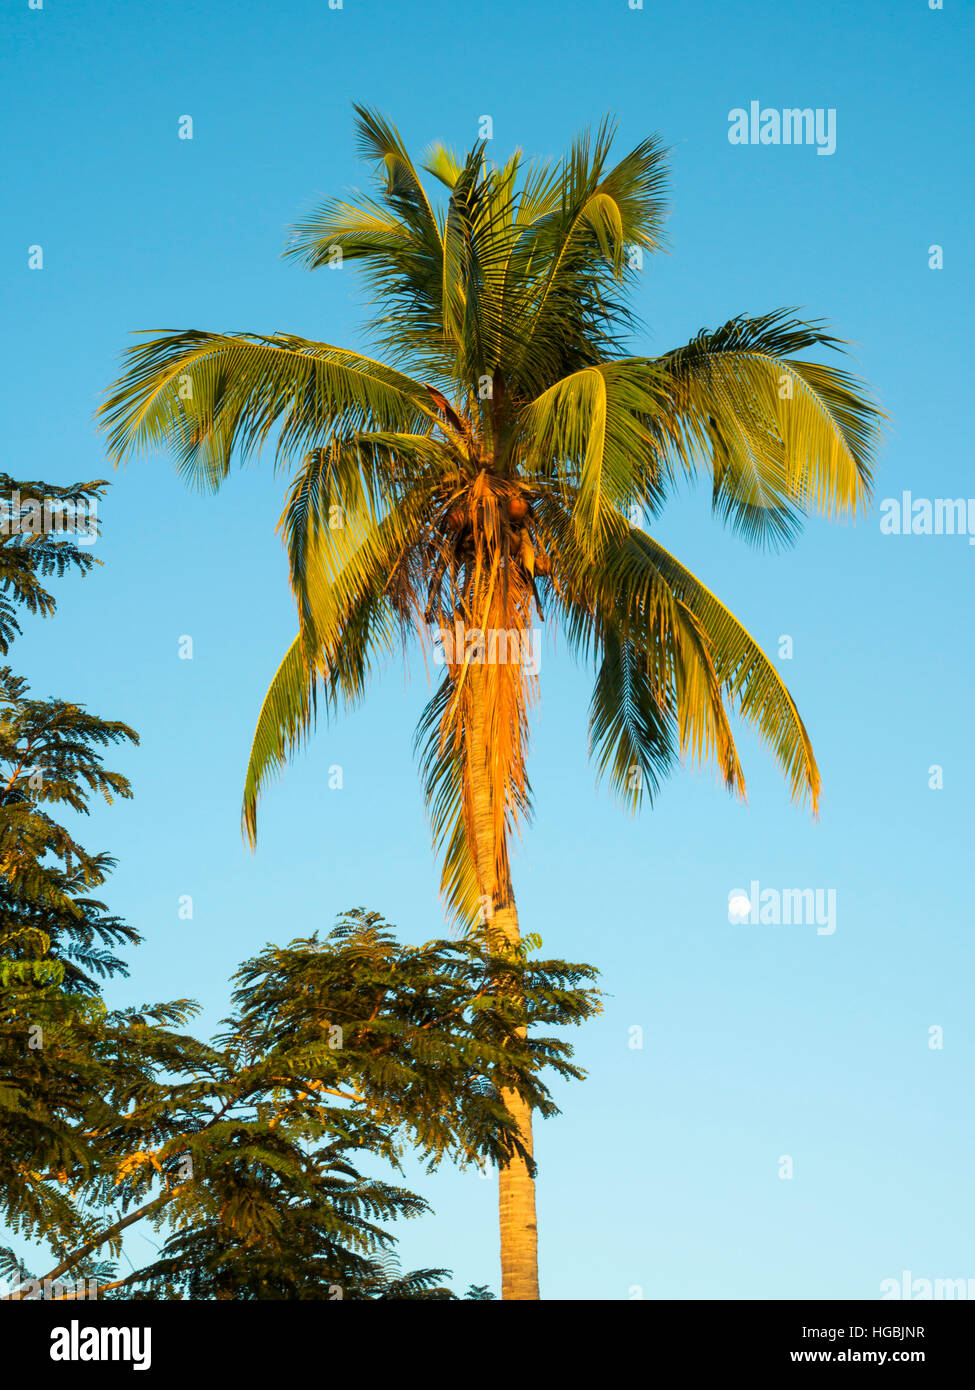 Coconut palm tree in Dili, East Timor - Stock Image